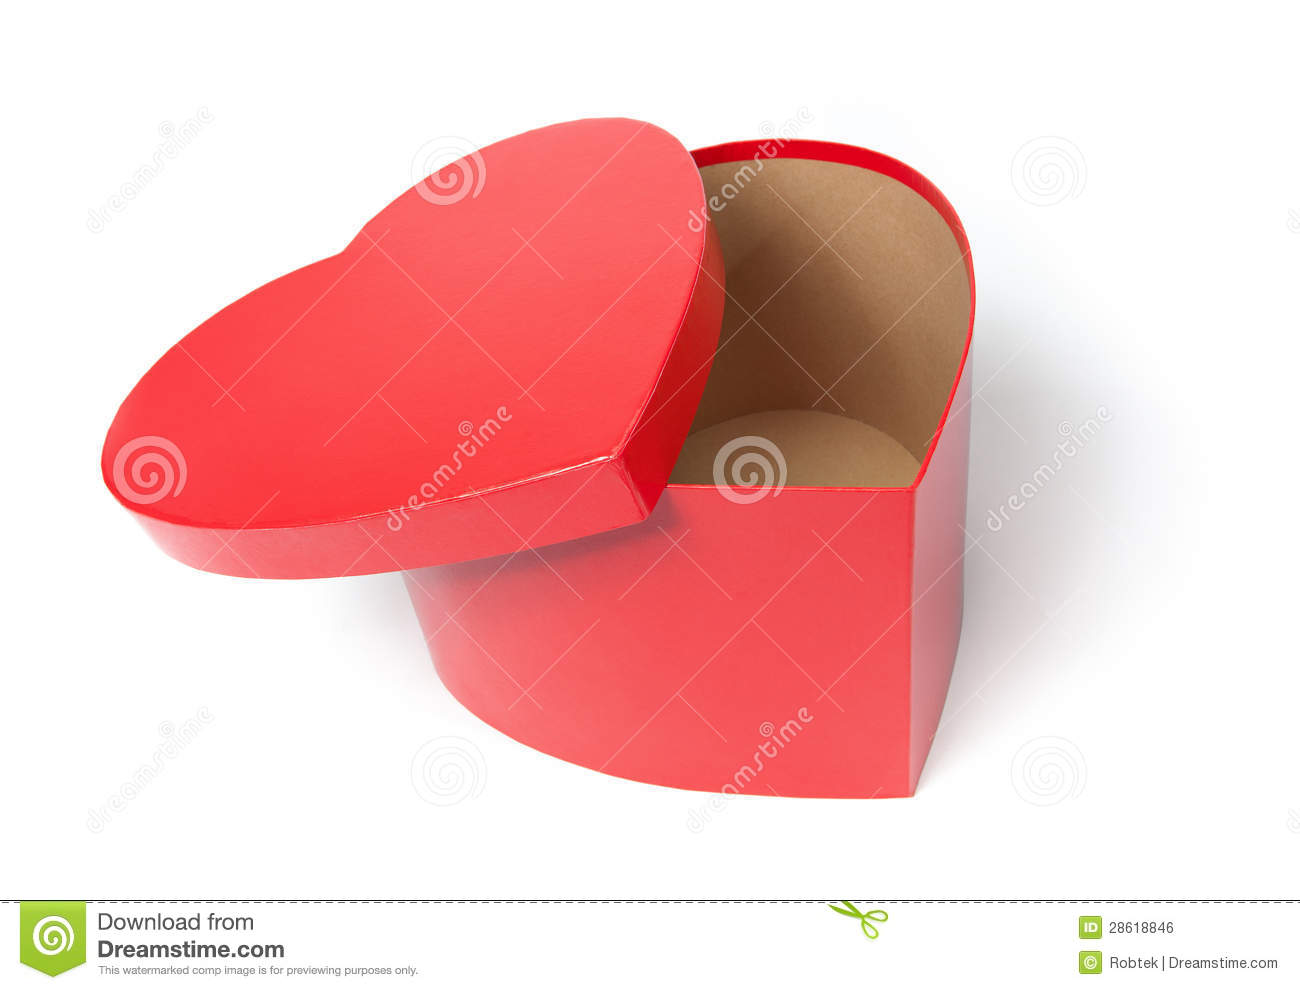 Empty heart shaped box stock photo image of heart cardboard 28618846 empty heart shaped box ccuart Image collections